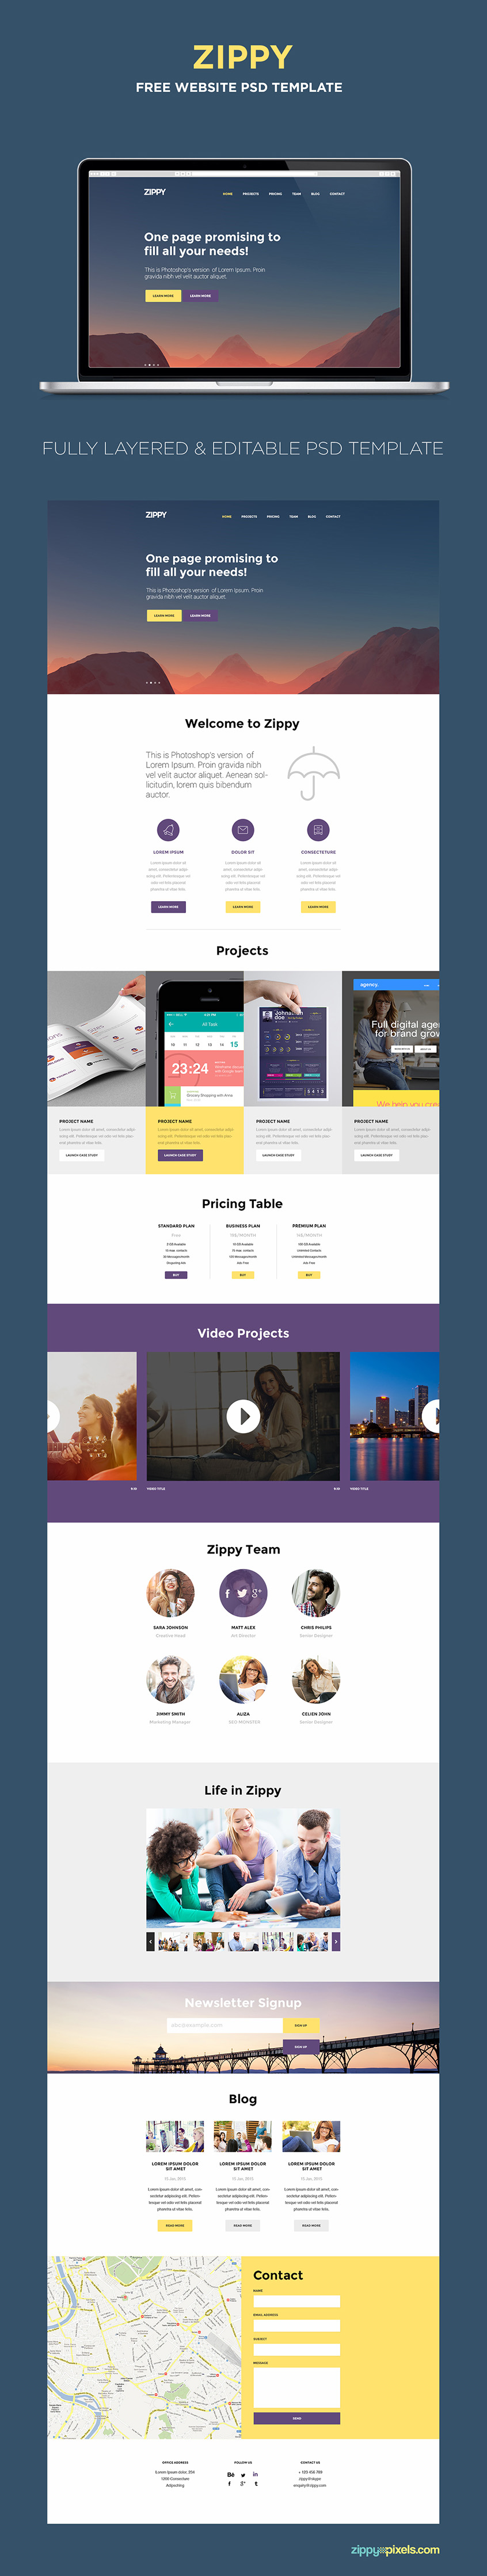 google sites faq template - free one page website template psd zippypixels